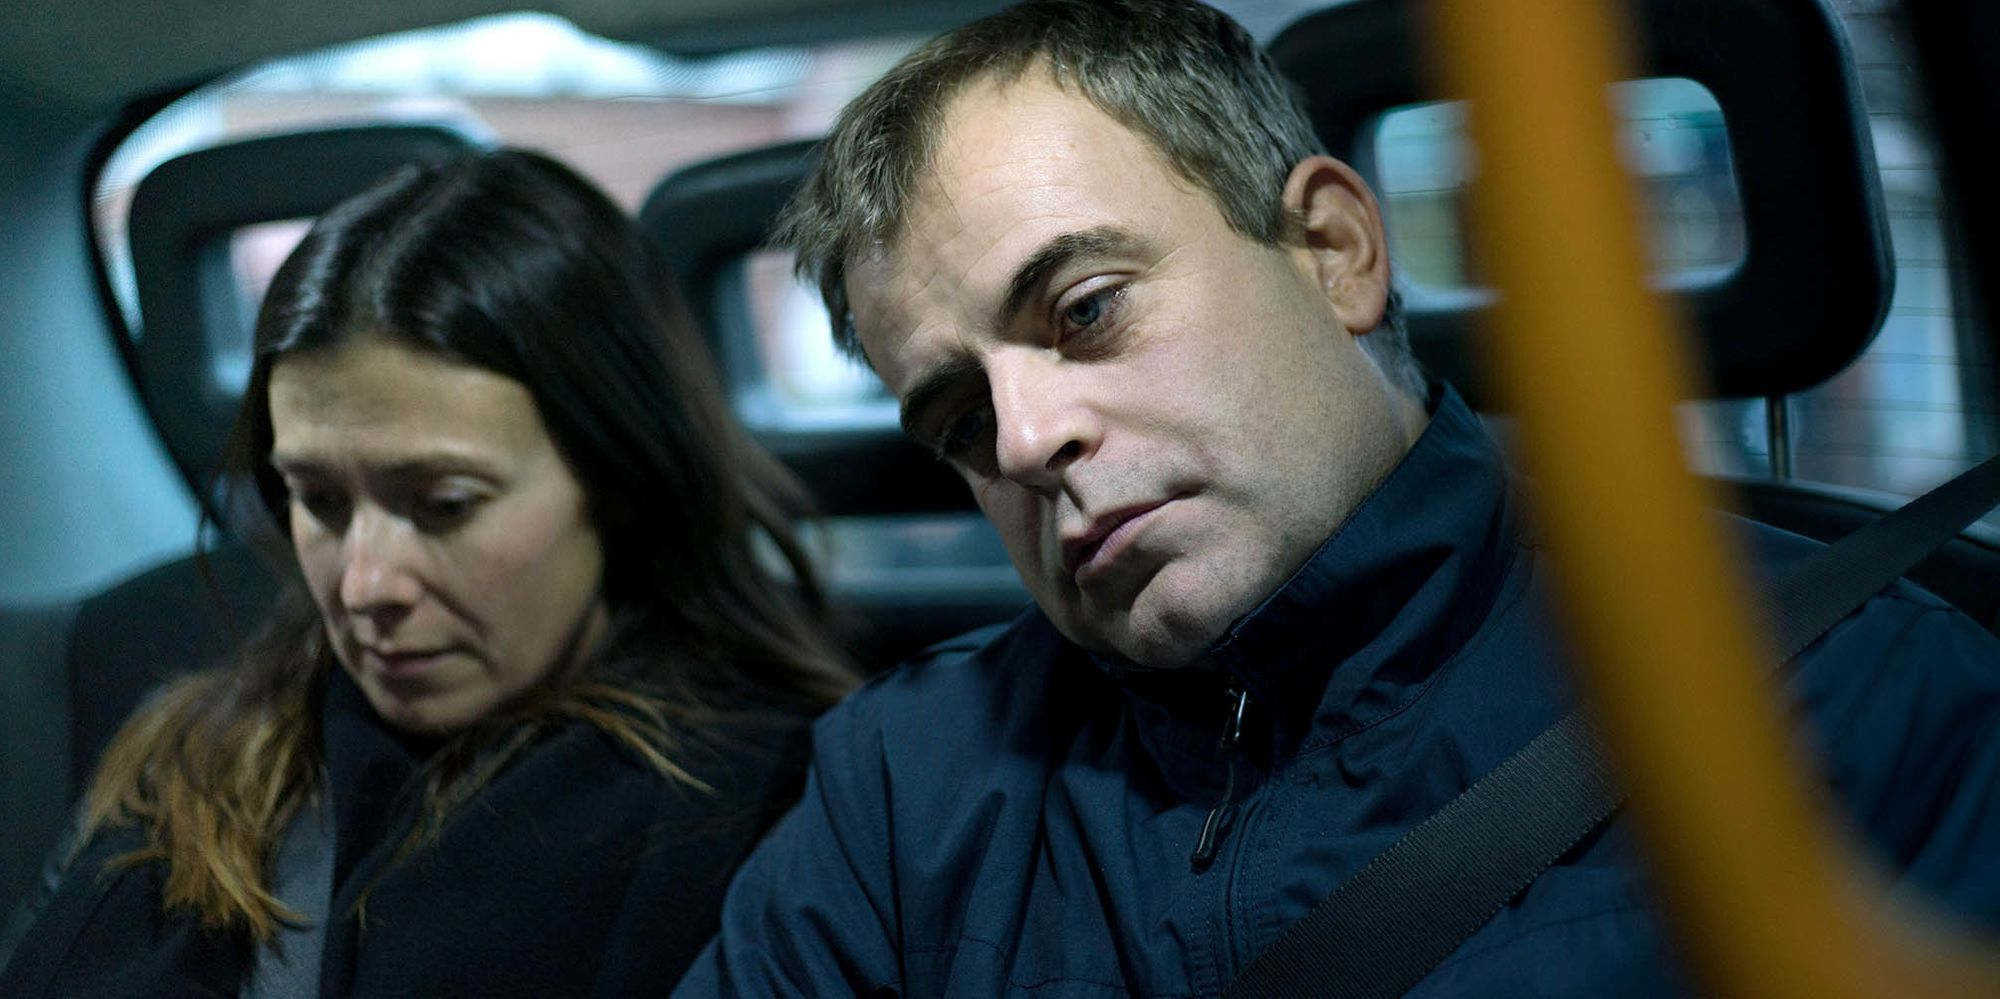 Coronation Street Spoilers: Kym Marsh And Simon Gregson Discuss Forthcoming Episodes, After Michelle Connor Stillbirth Scenes